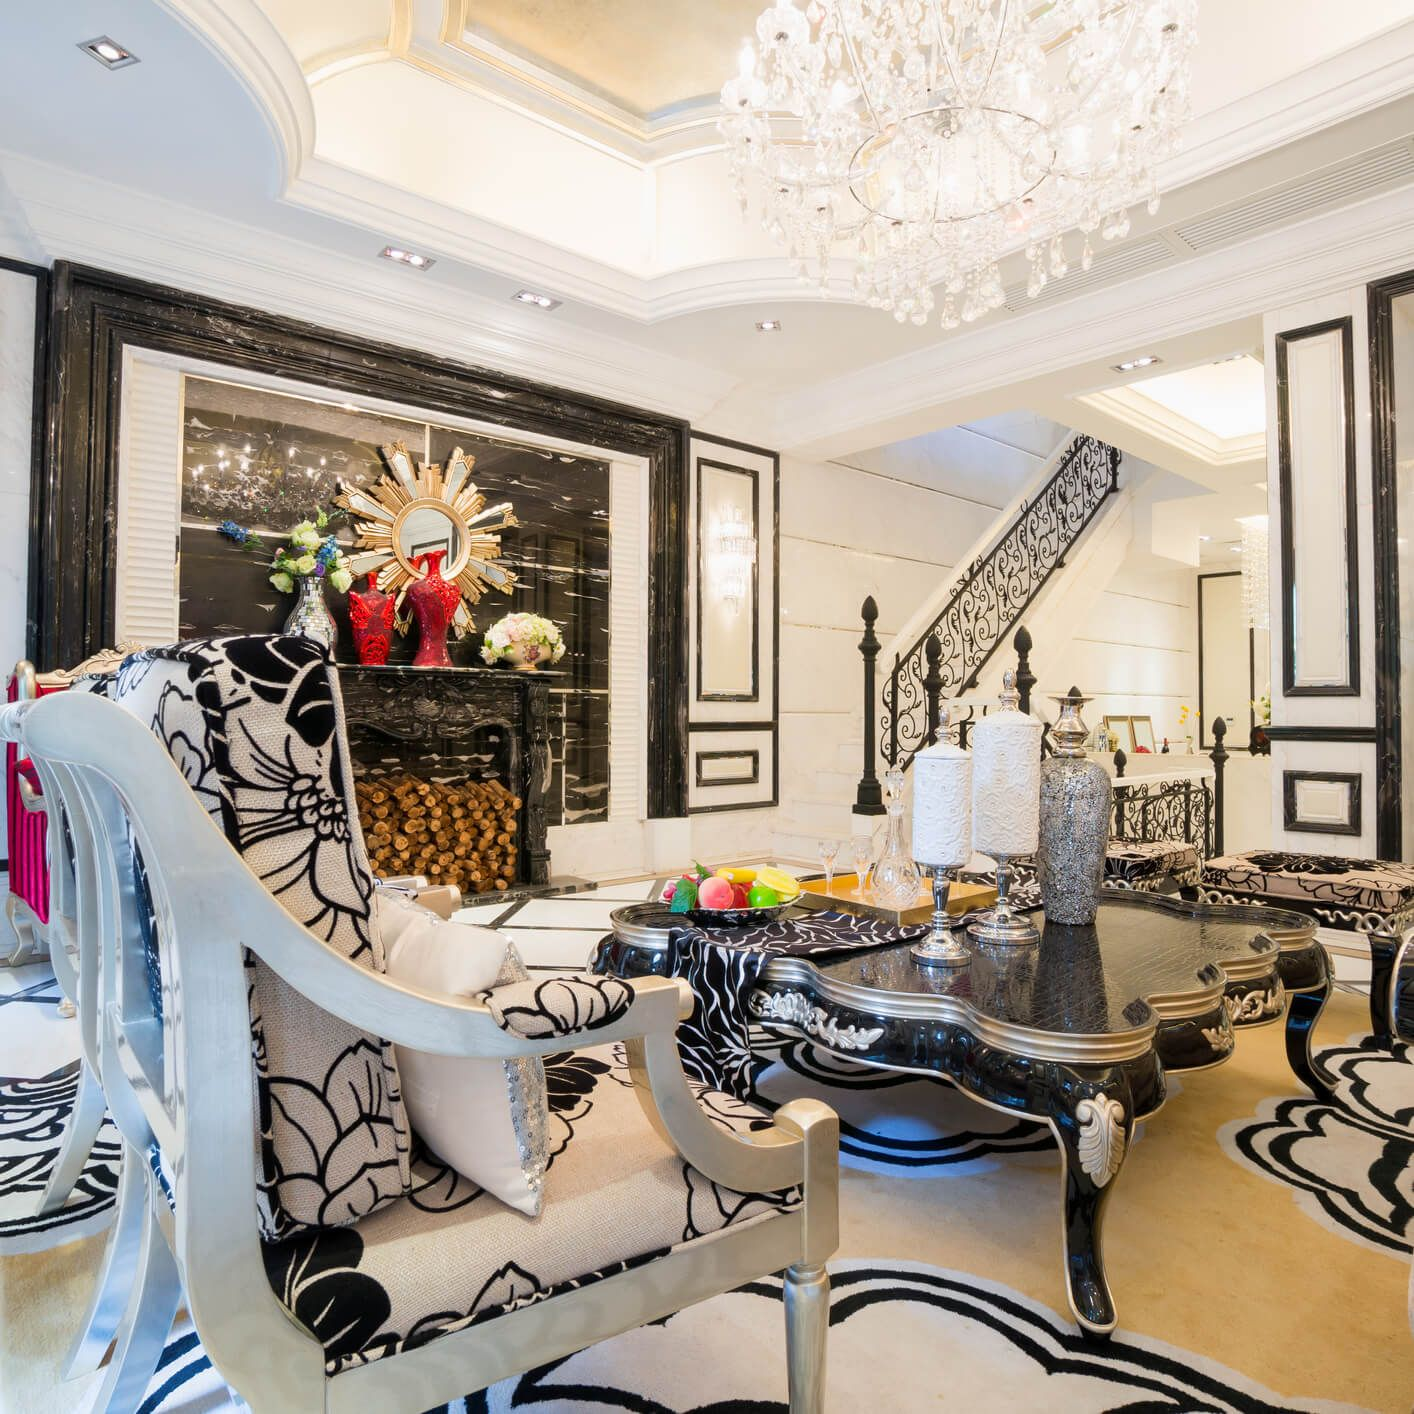 Zebra living room design with black and white patterns on the walls